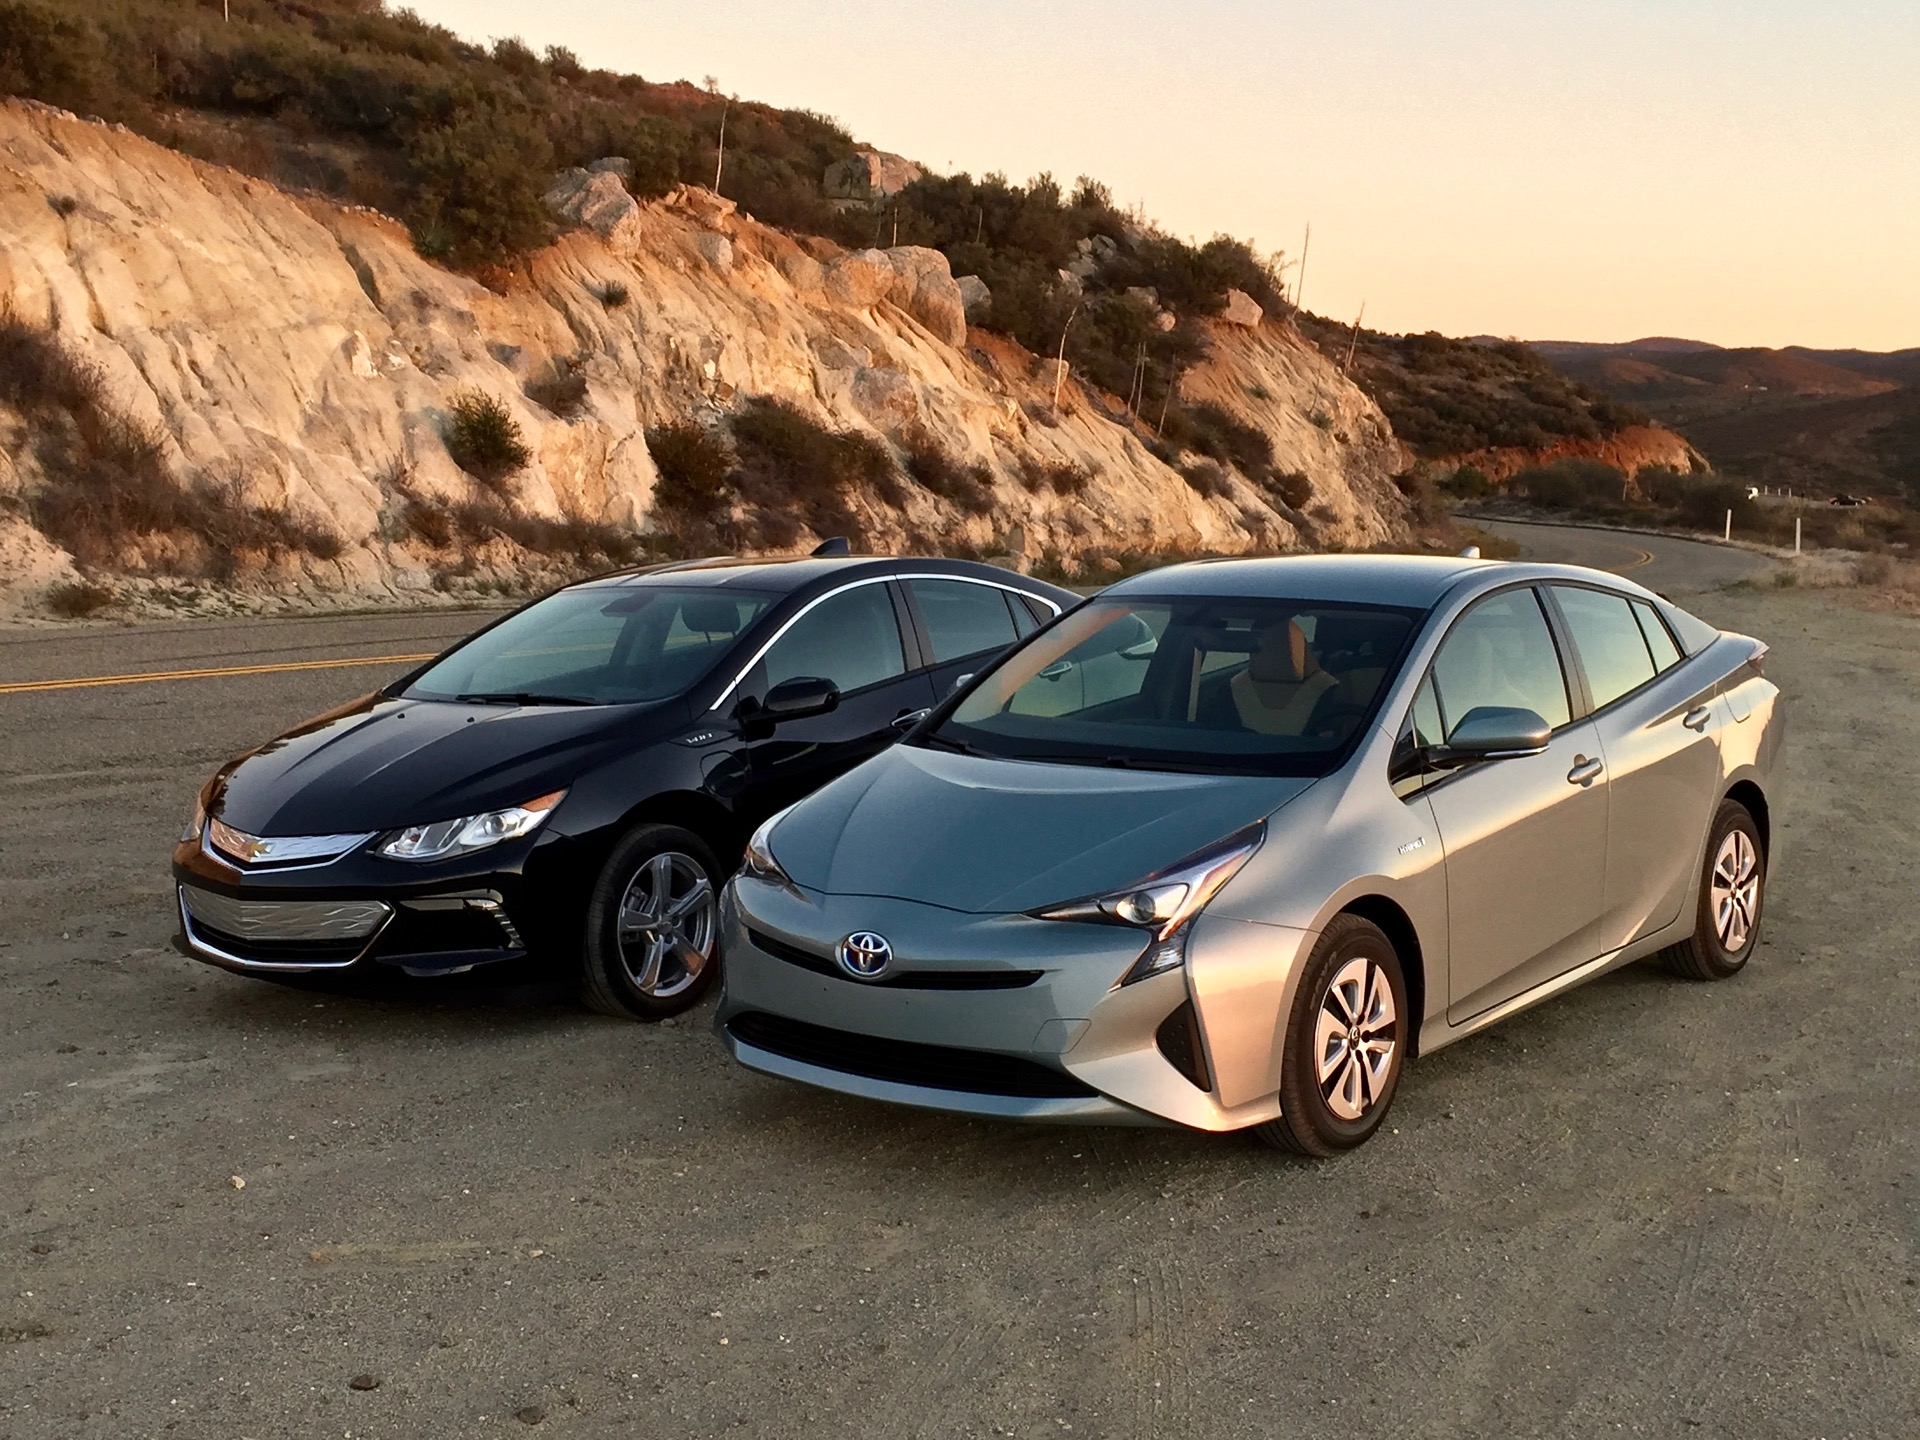 prius vs volt video tesla reliability mercedes on electric cars the week in reverse video. Black Bedroom Furniture Sets. Home Design Ideas